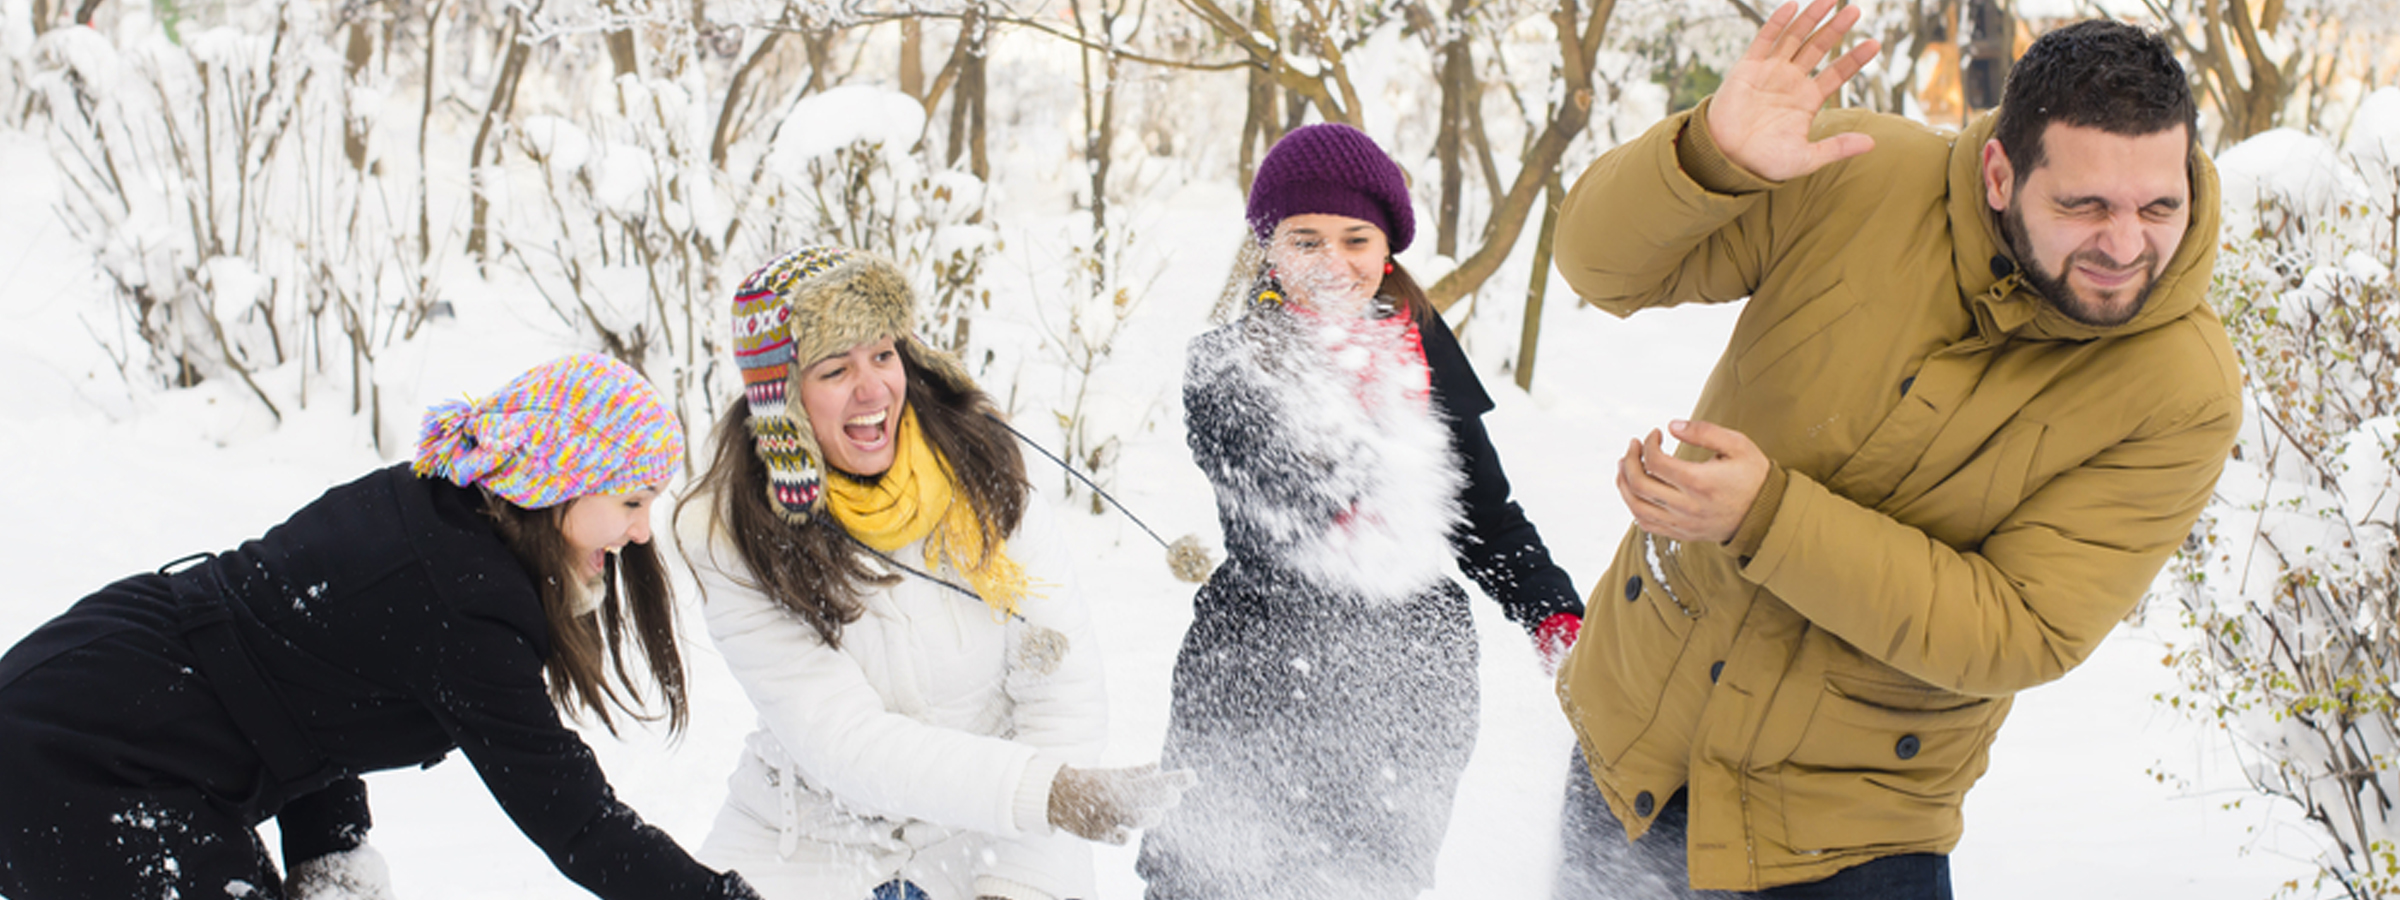 people playing with snow